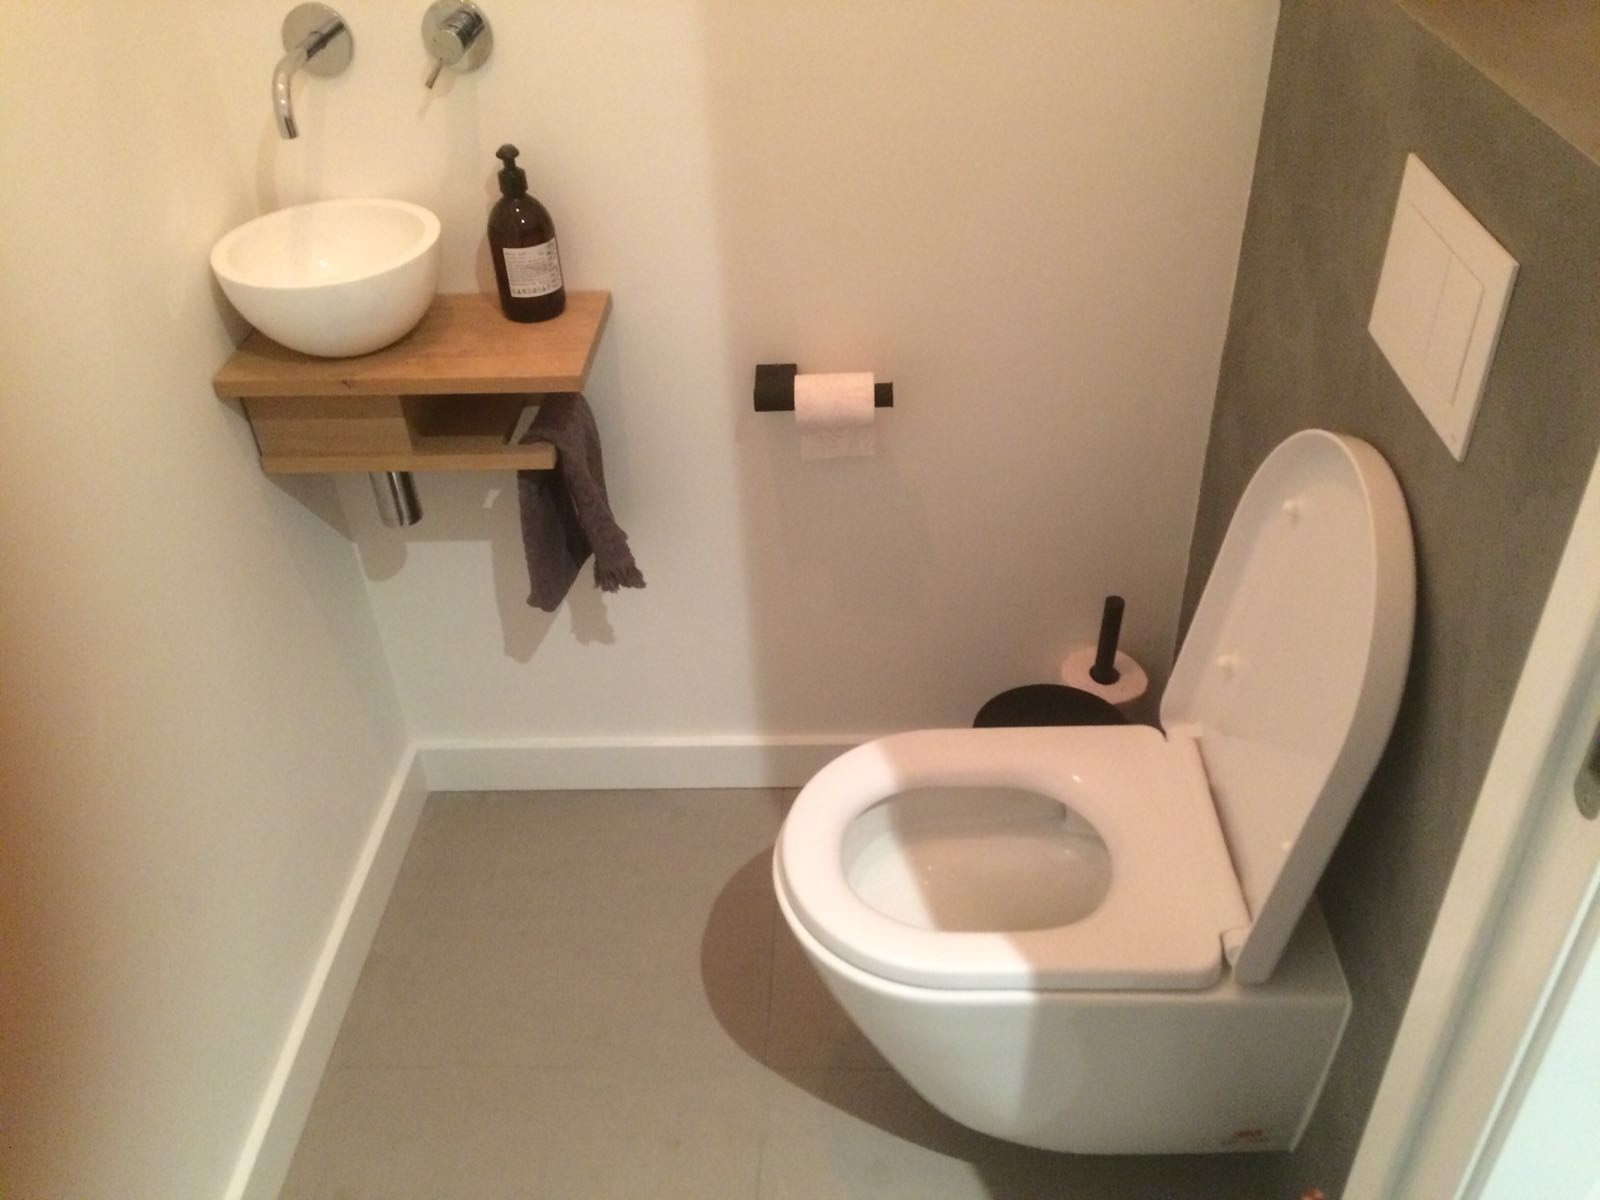 Beton cire wc concrete walls by beton cire in a modern and